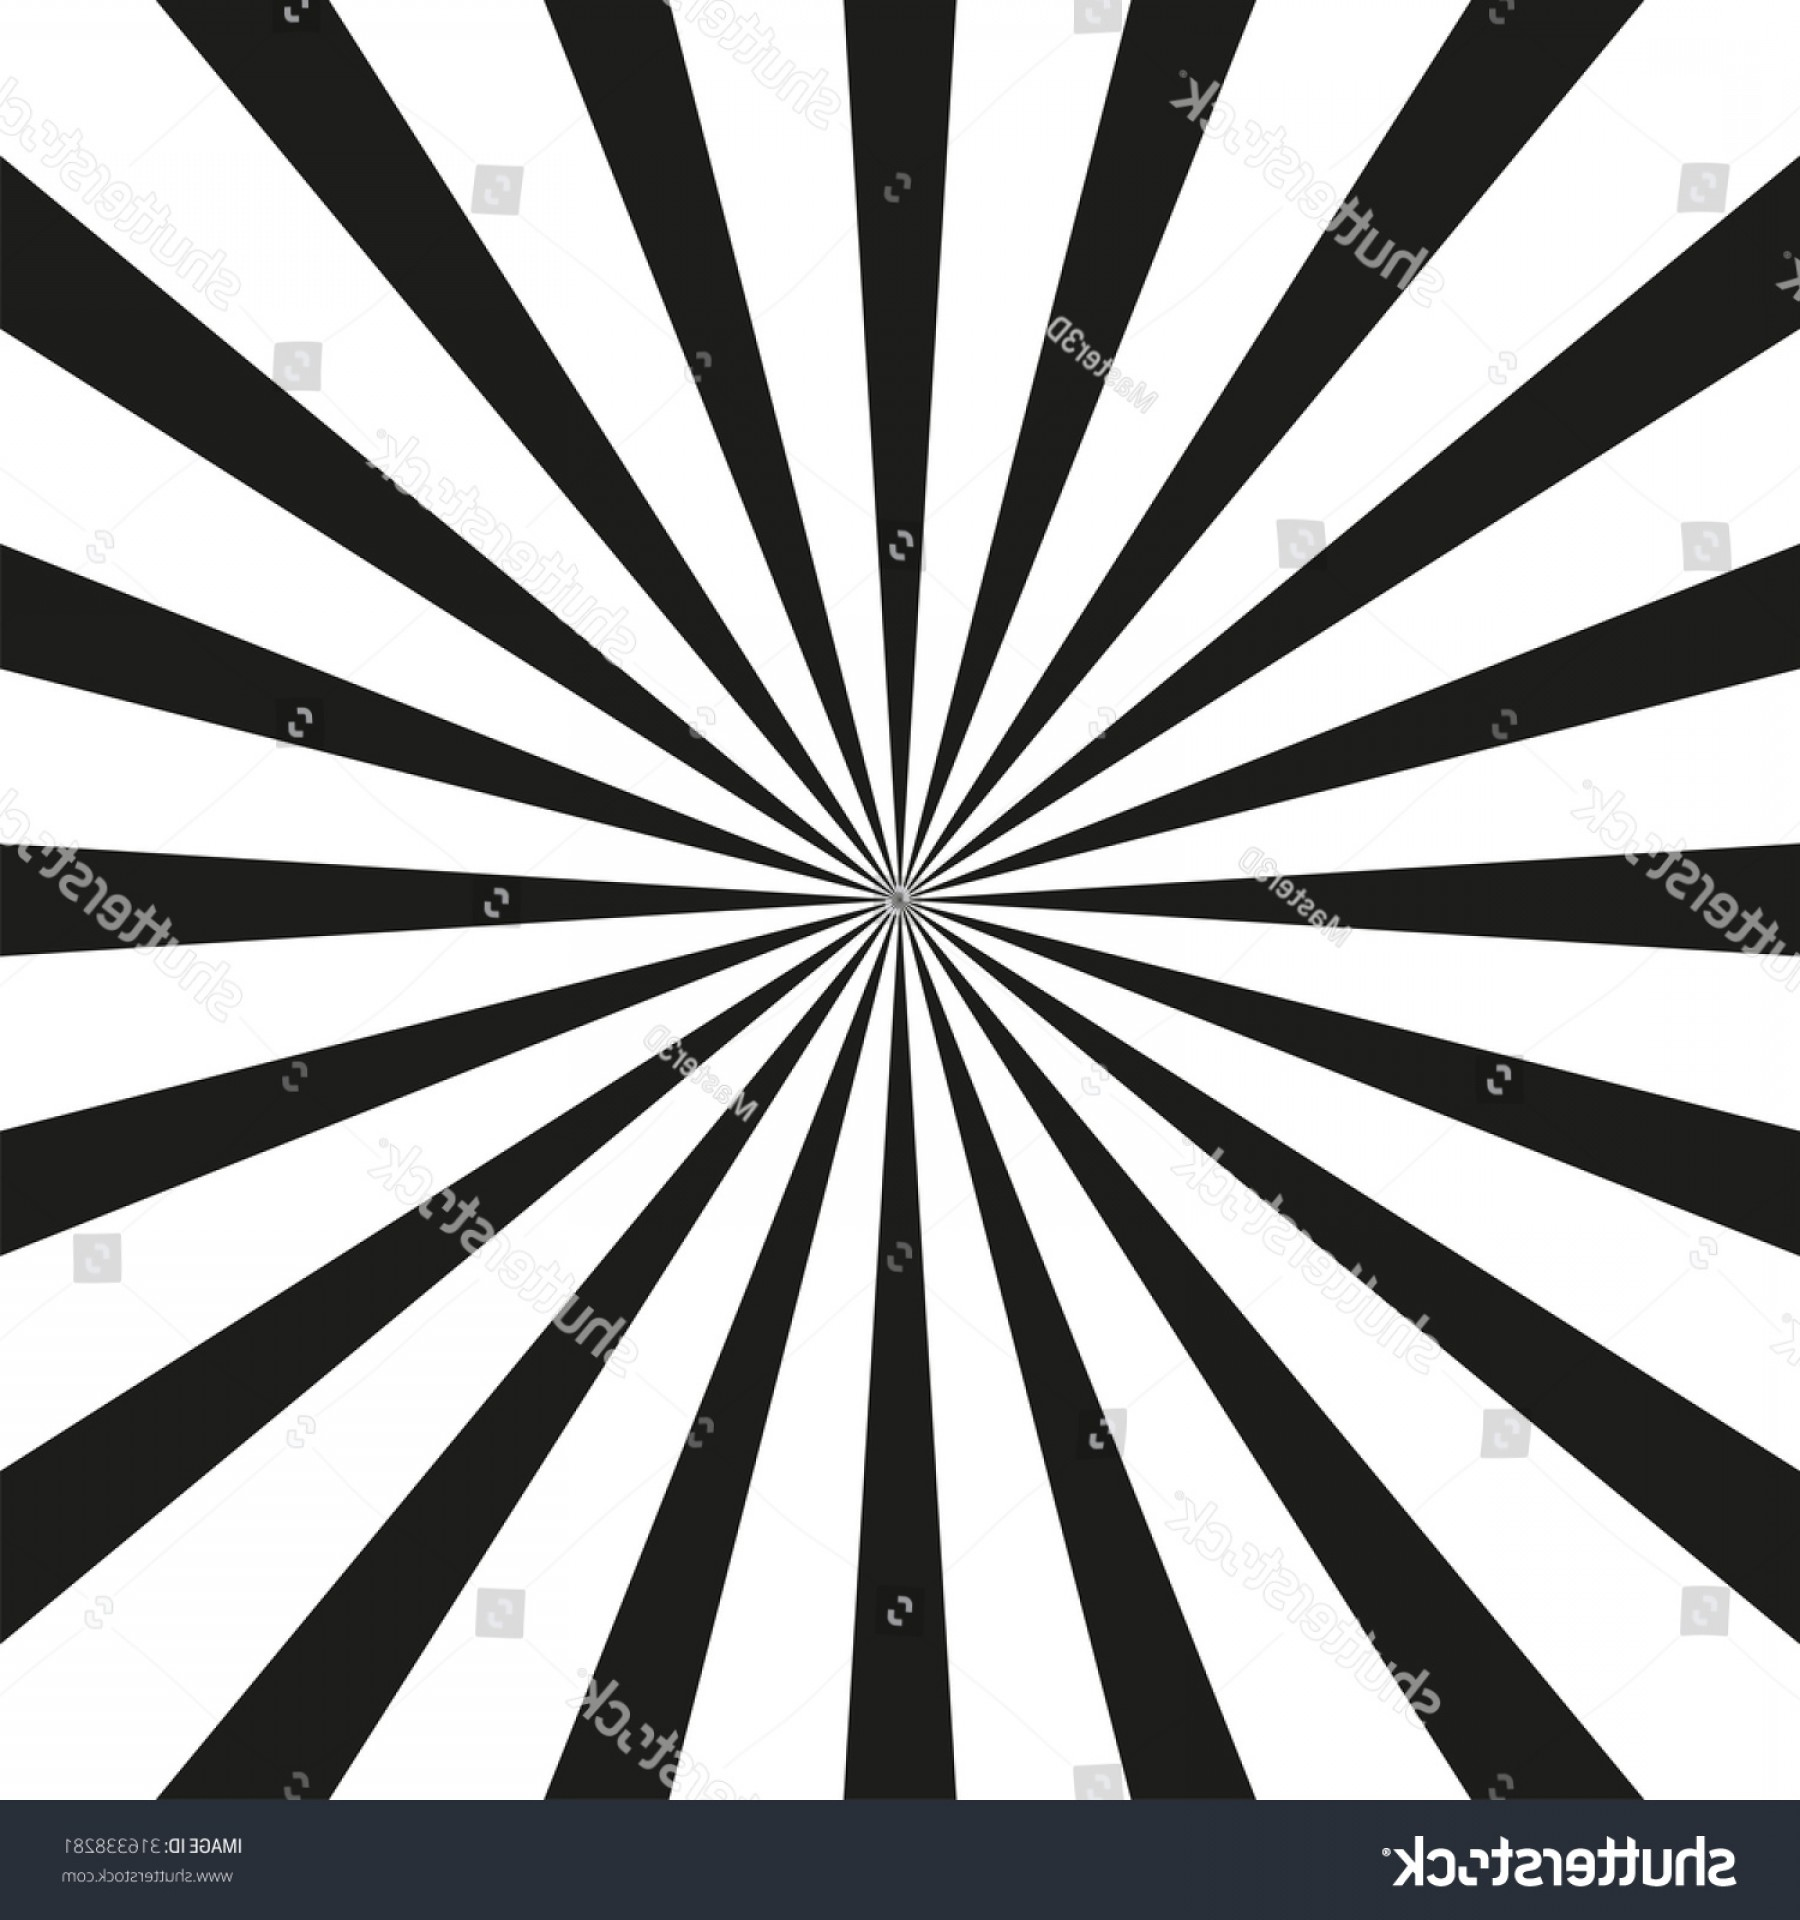 1800x1920 Retro Sunburst Vector Background Black White Sohadacouri